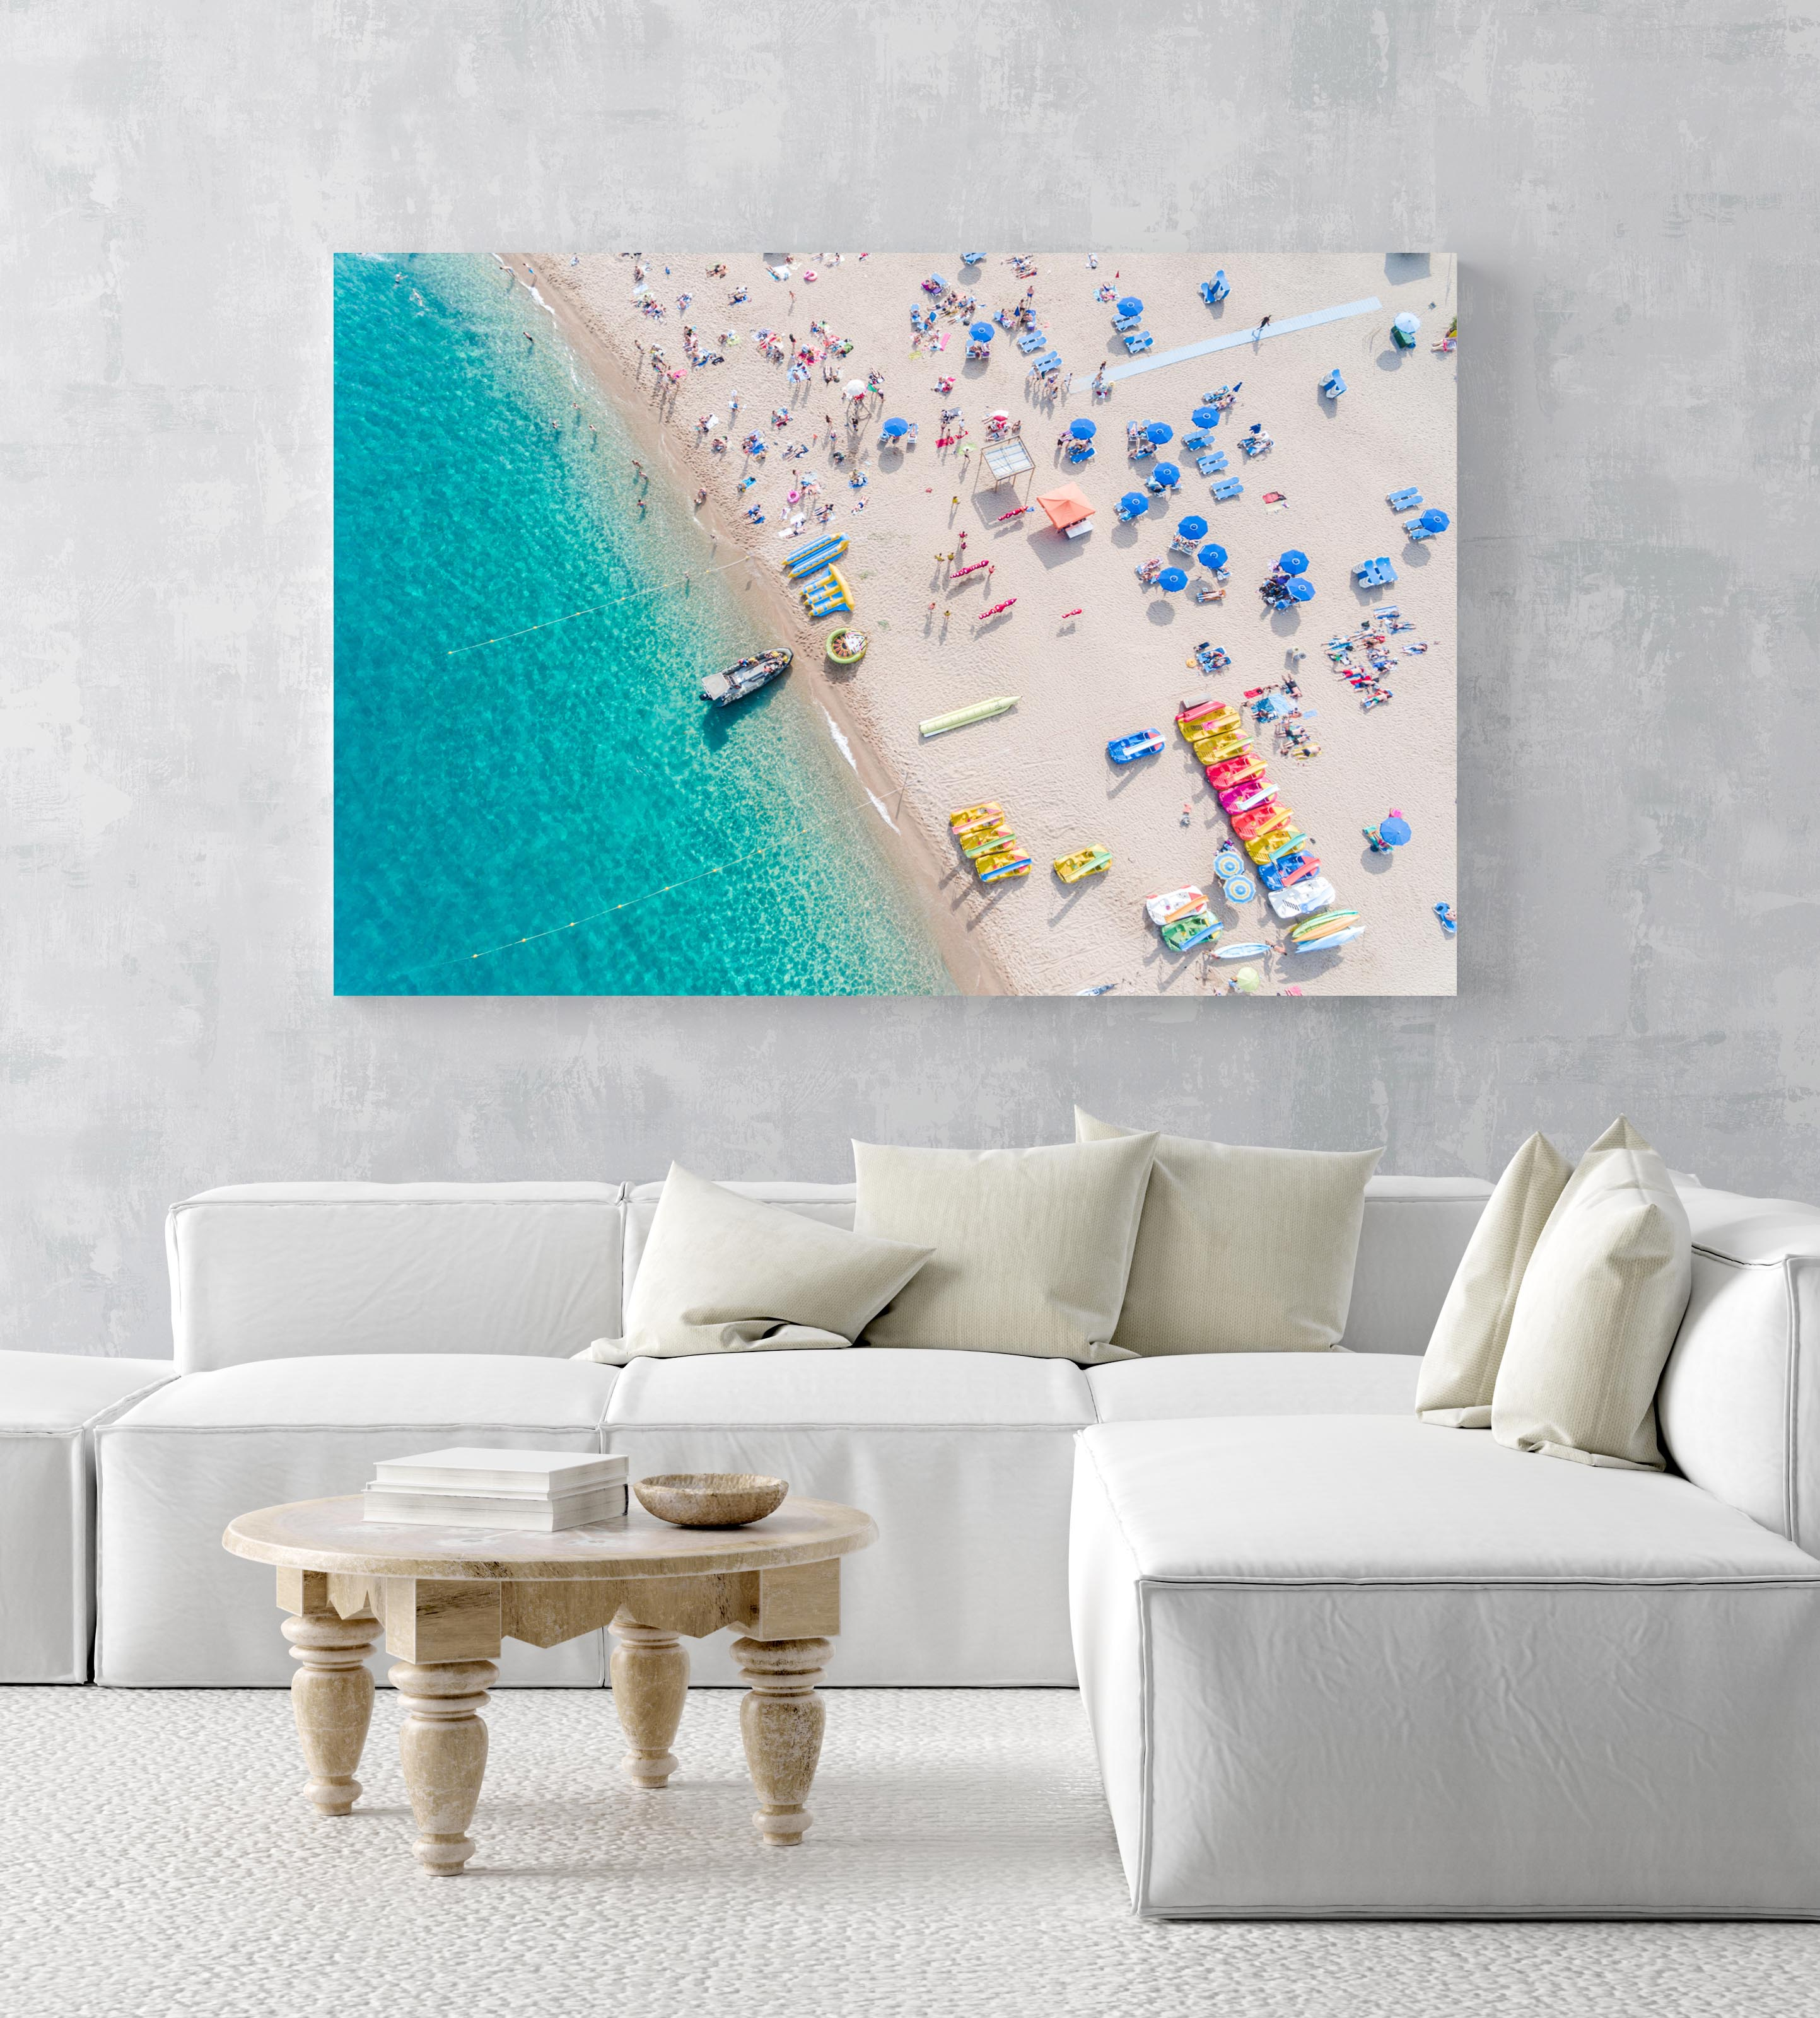 Boat parked off in blue water at Lloret de Mar beach Costa Brava in an acrylic/perspex frame